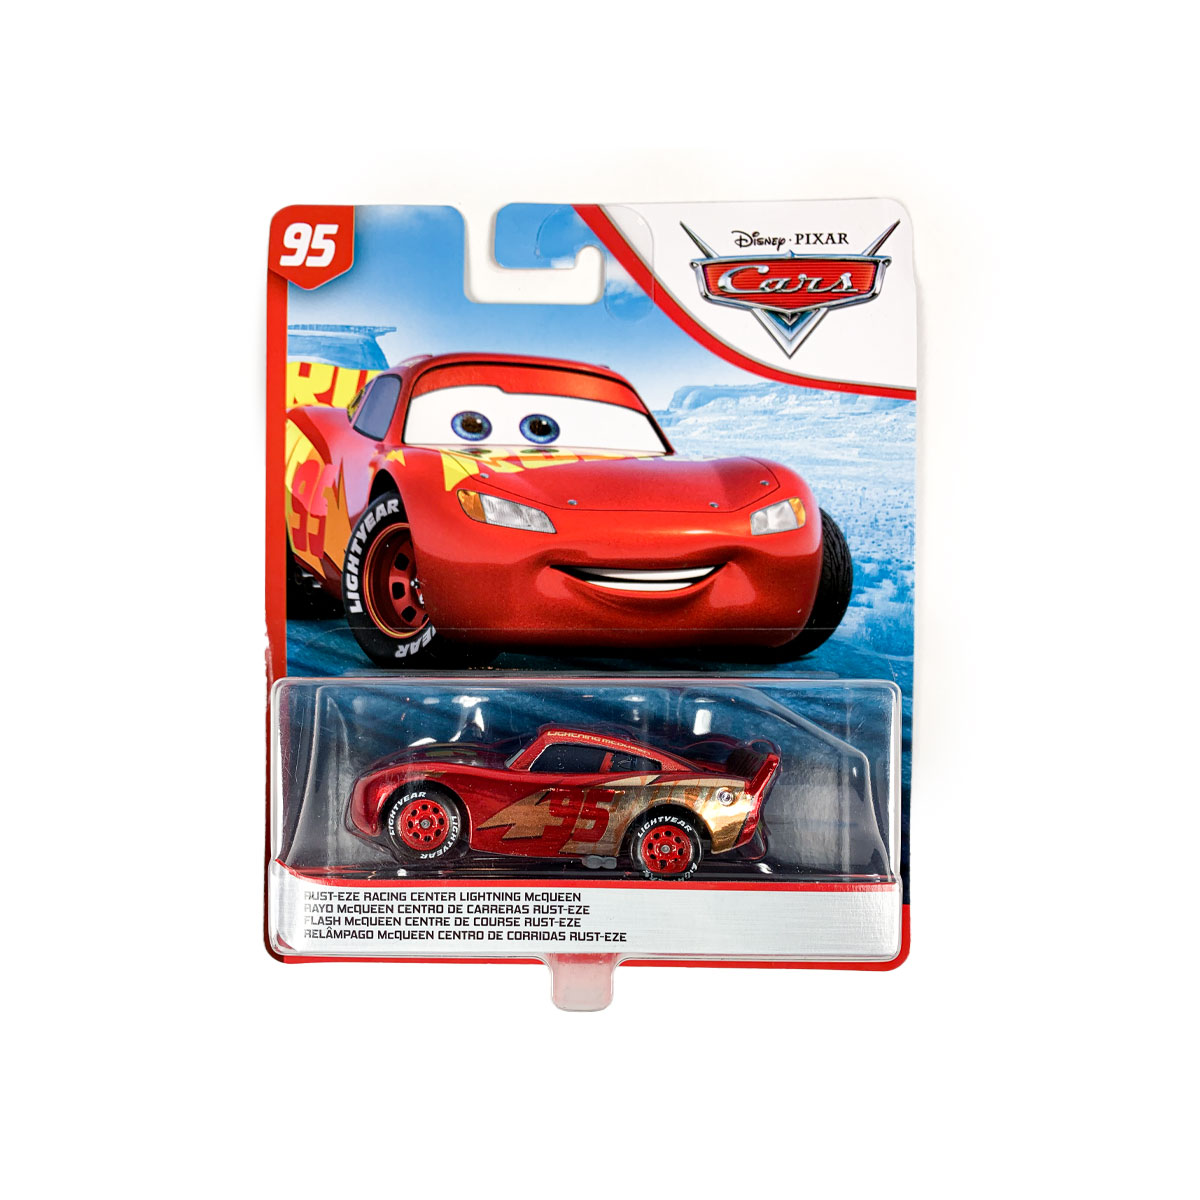 Disney Cars 3 Racing Center Lightning Mcqueen Die Cast Vehicle